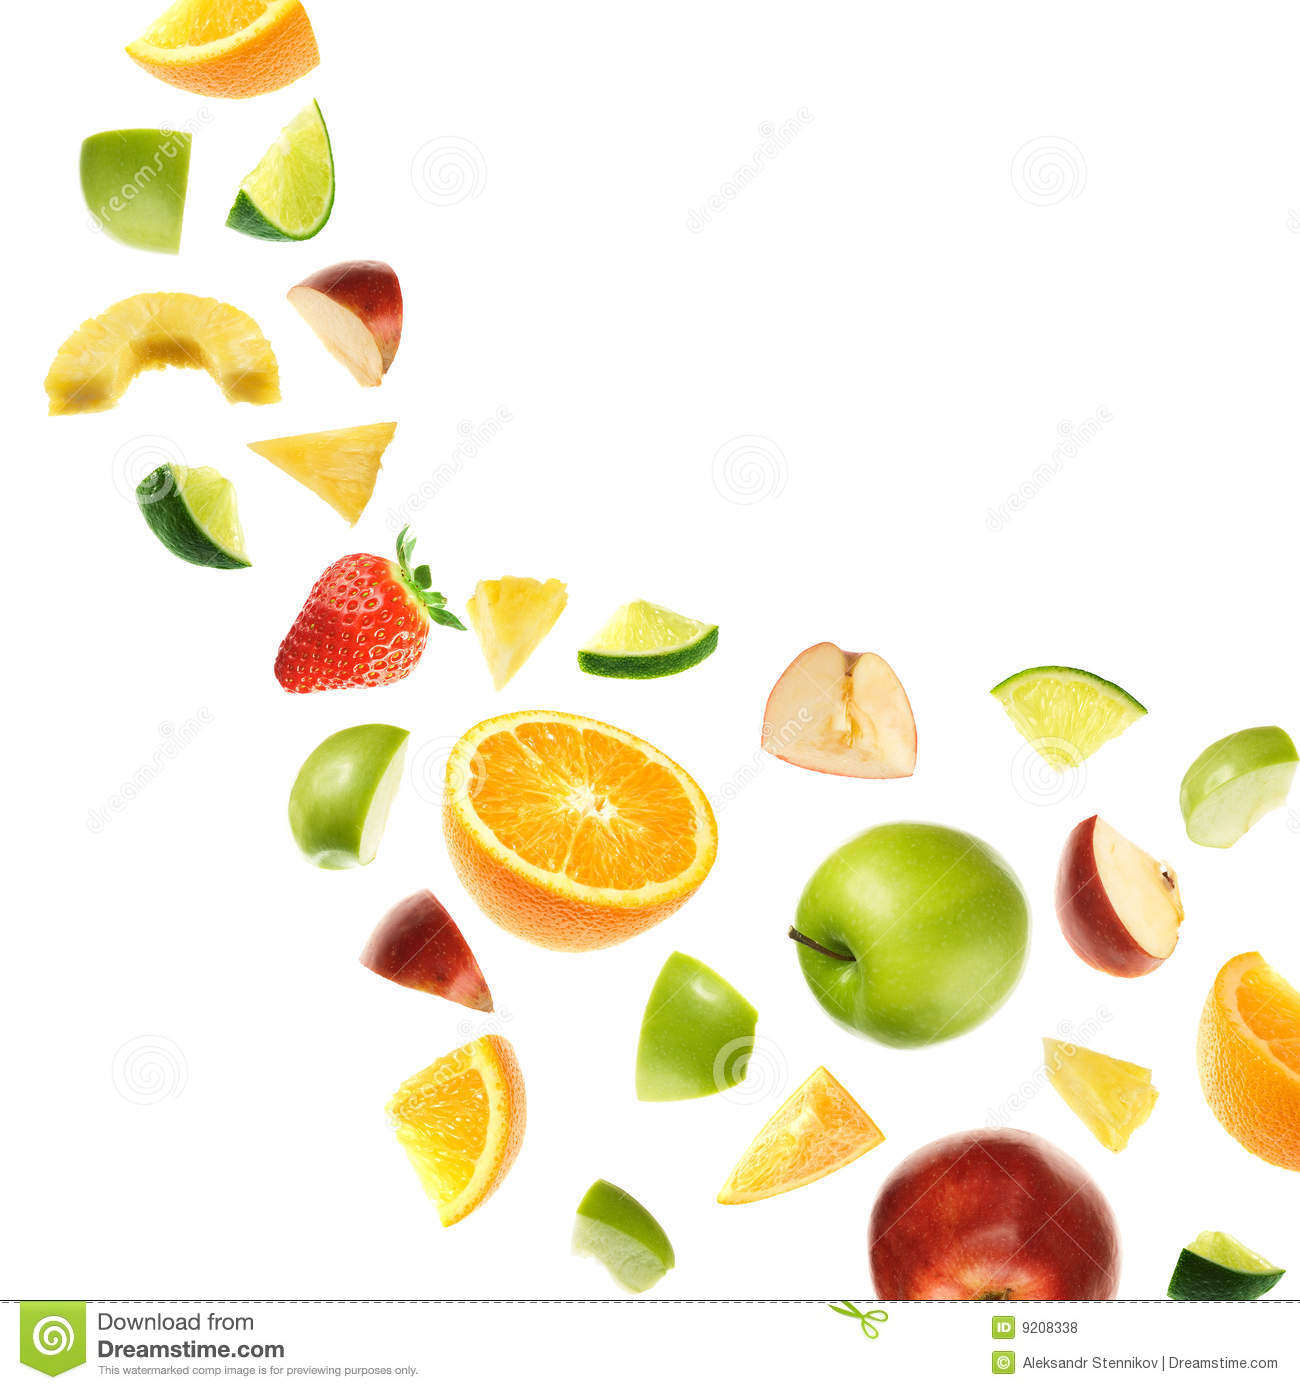 Falling Fruits Royalty Free Stock Photos - Image: 9208338